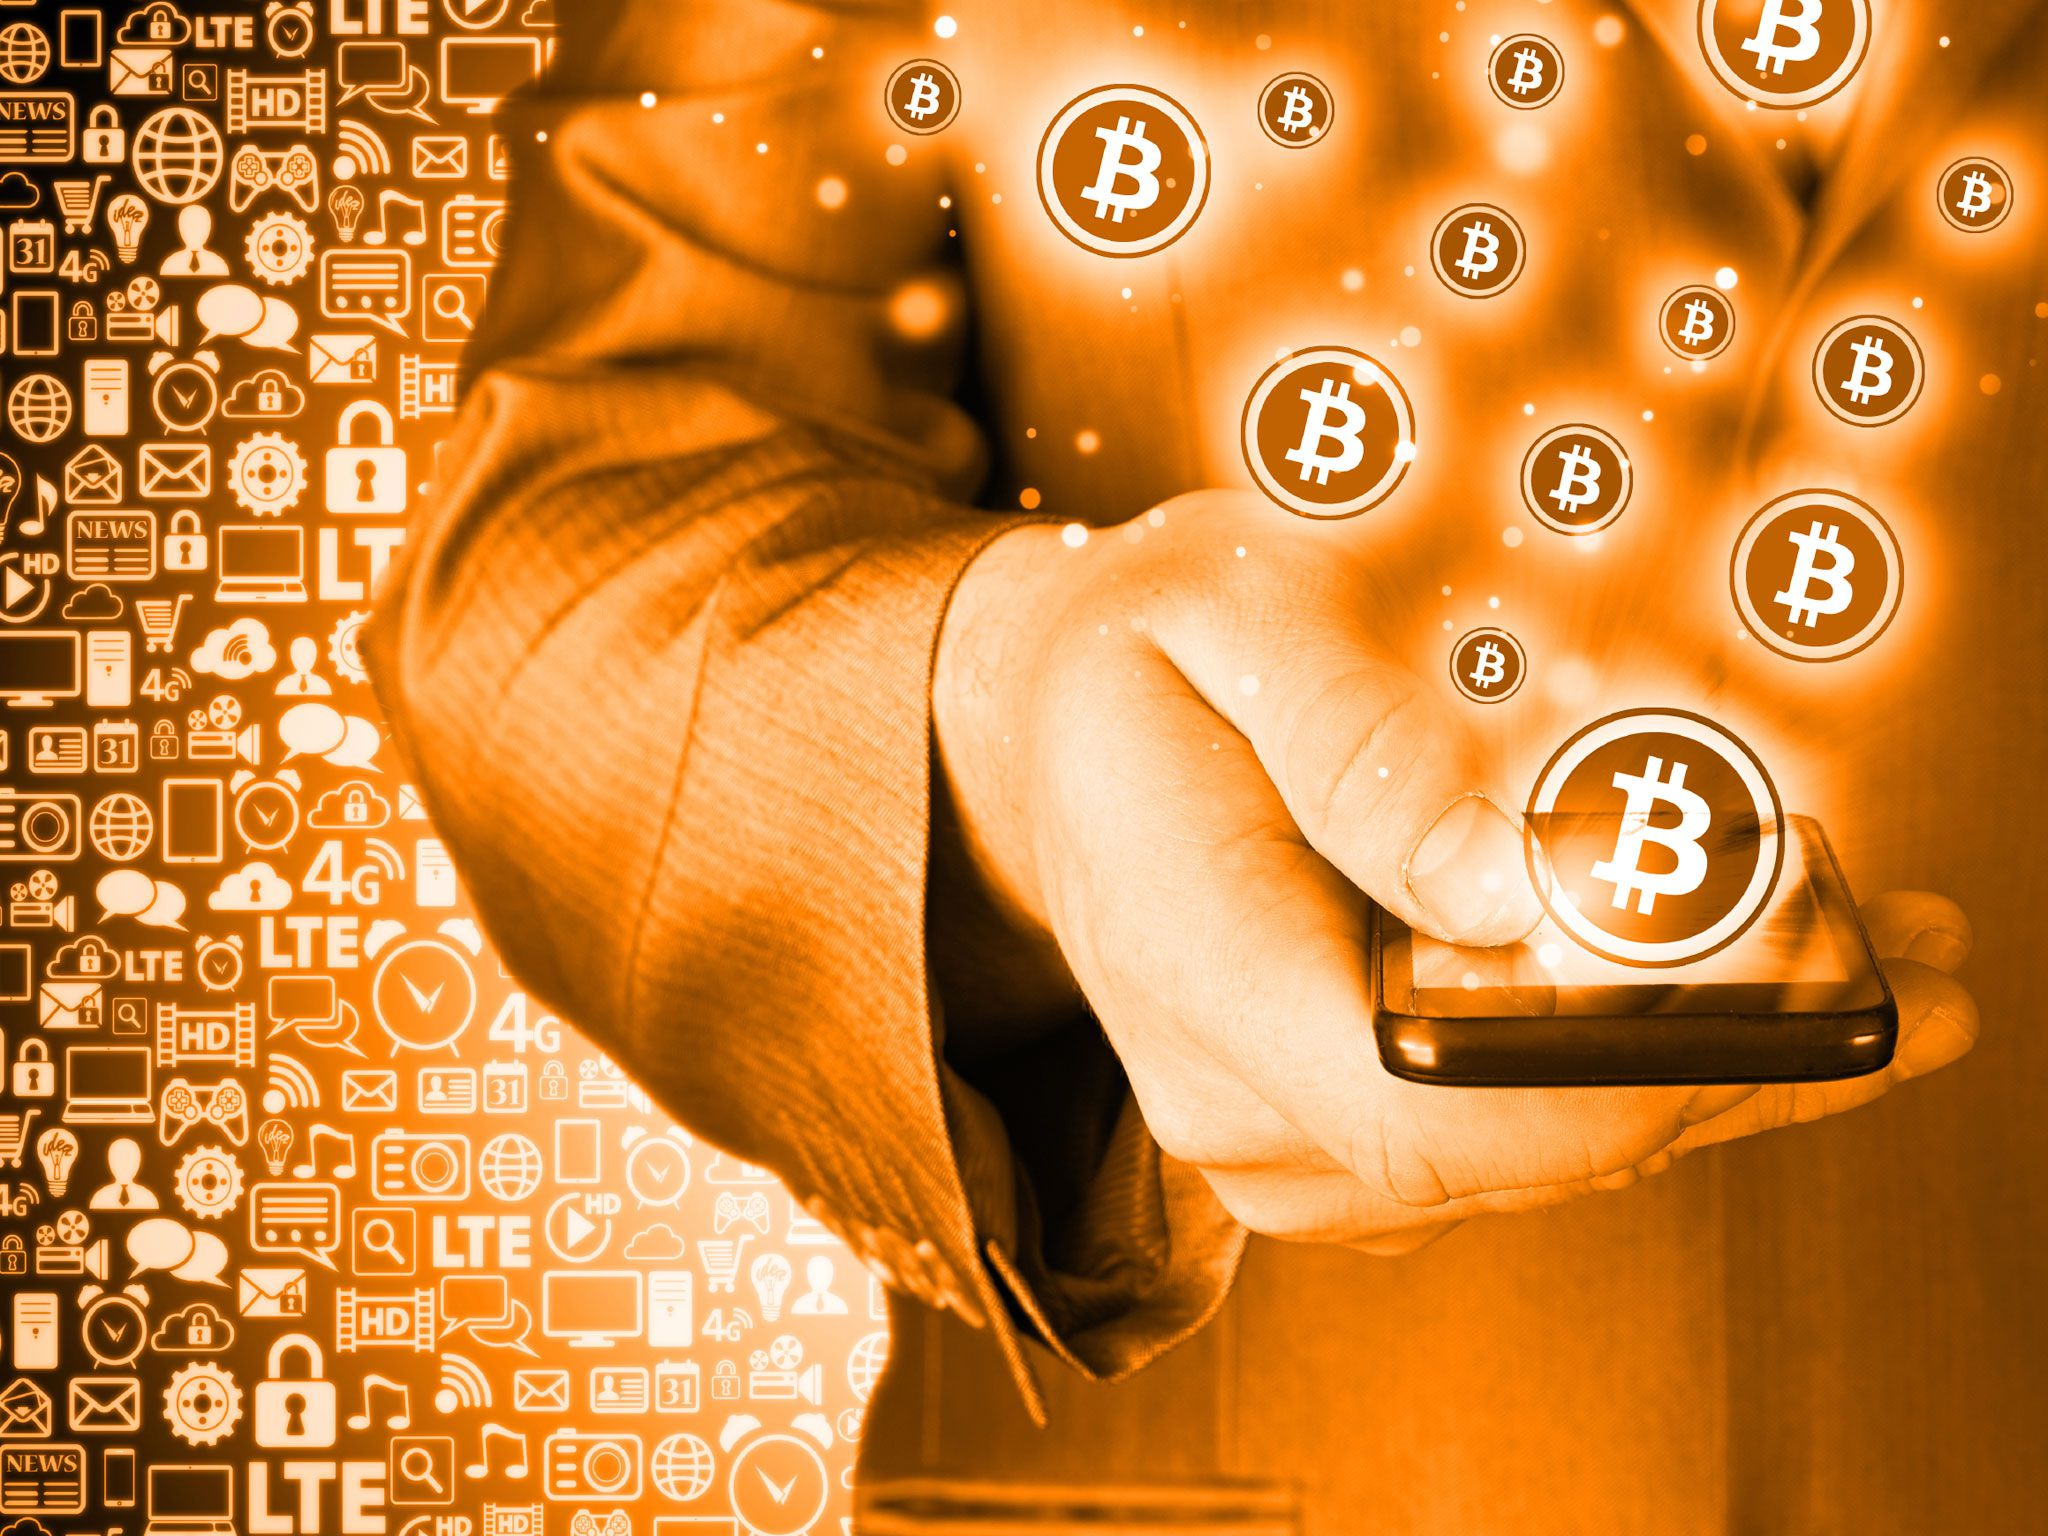 Bitcoin And Phone Full Hd Copper Color Bitcoin Stock 2048x1536 Wallpaper Teahub Io